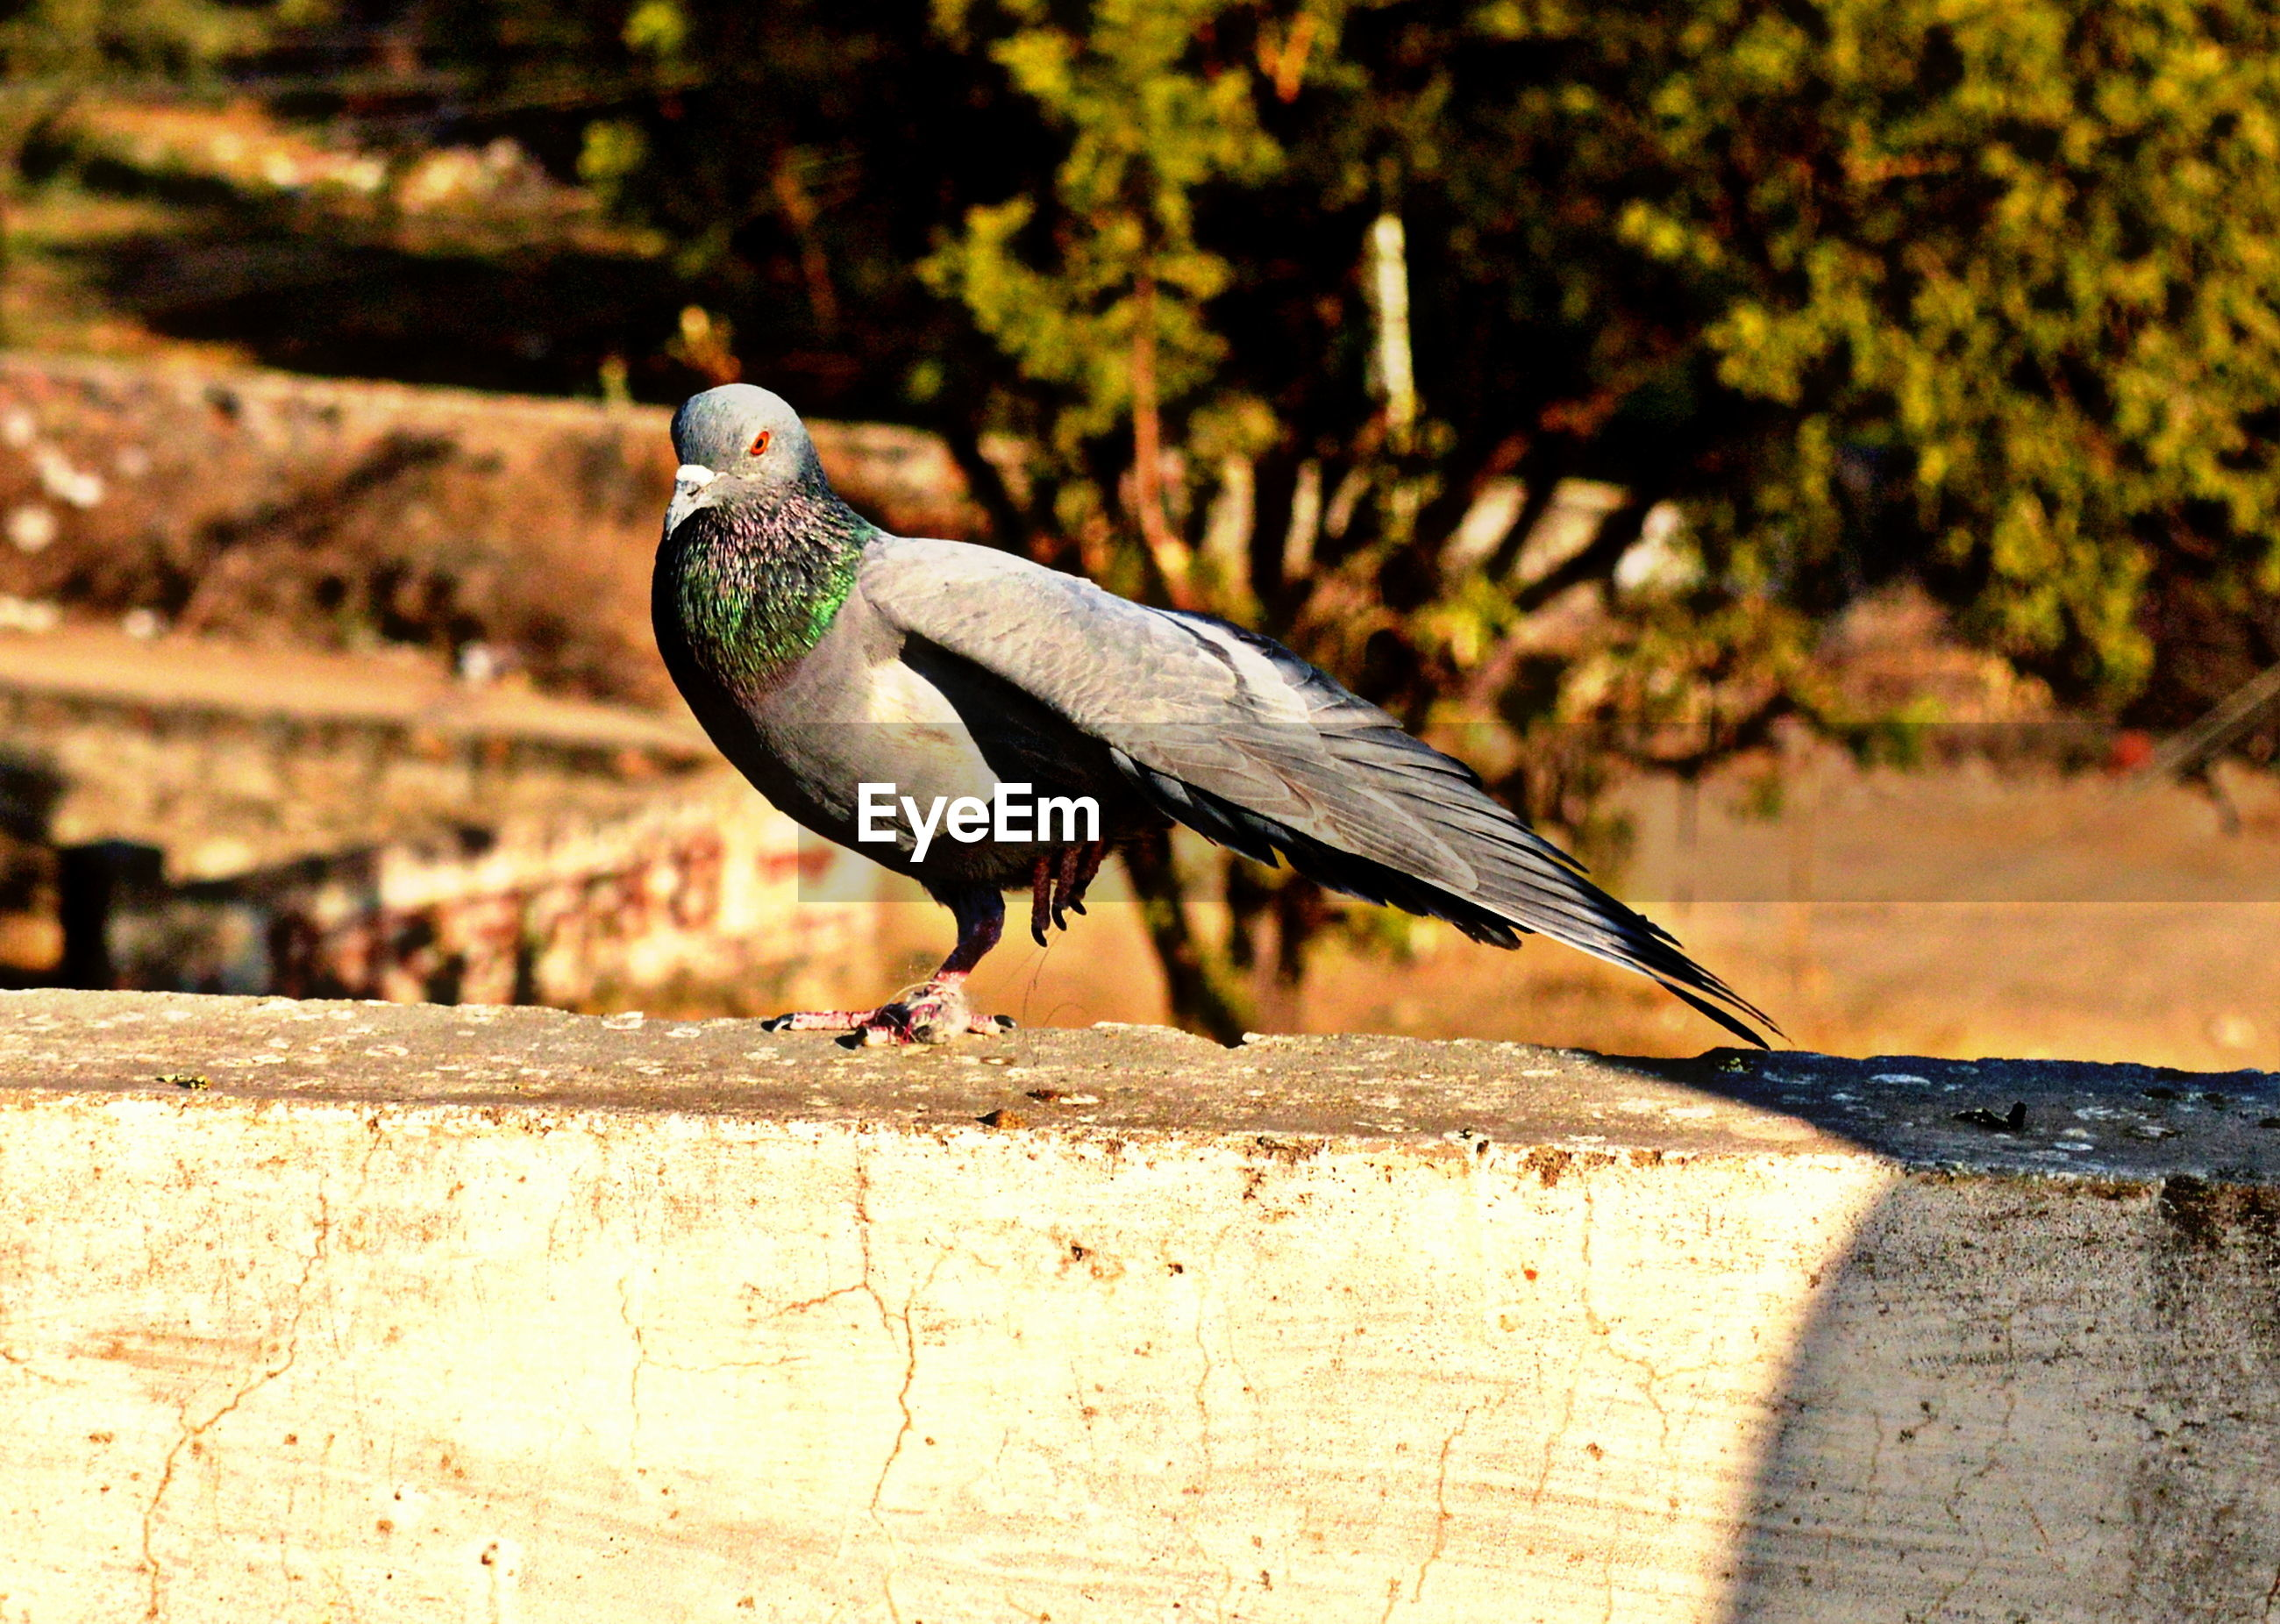 Pigeon perching on retaining wall against trees